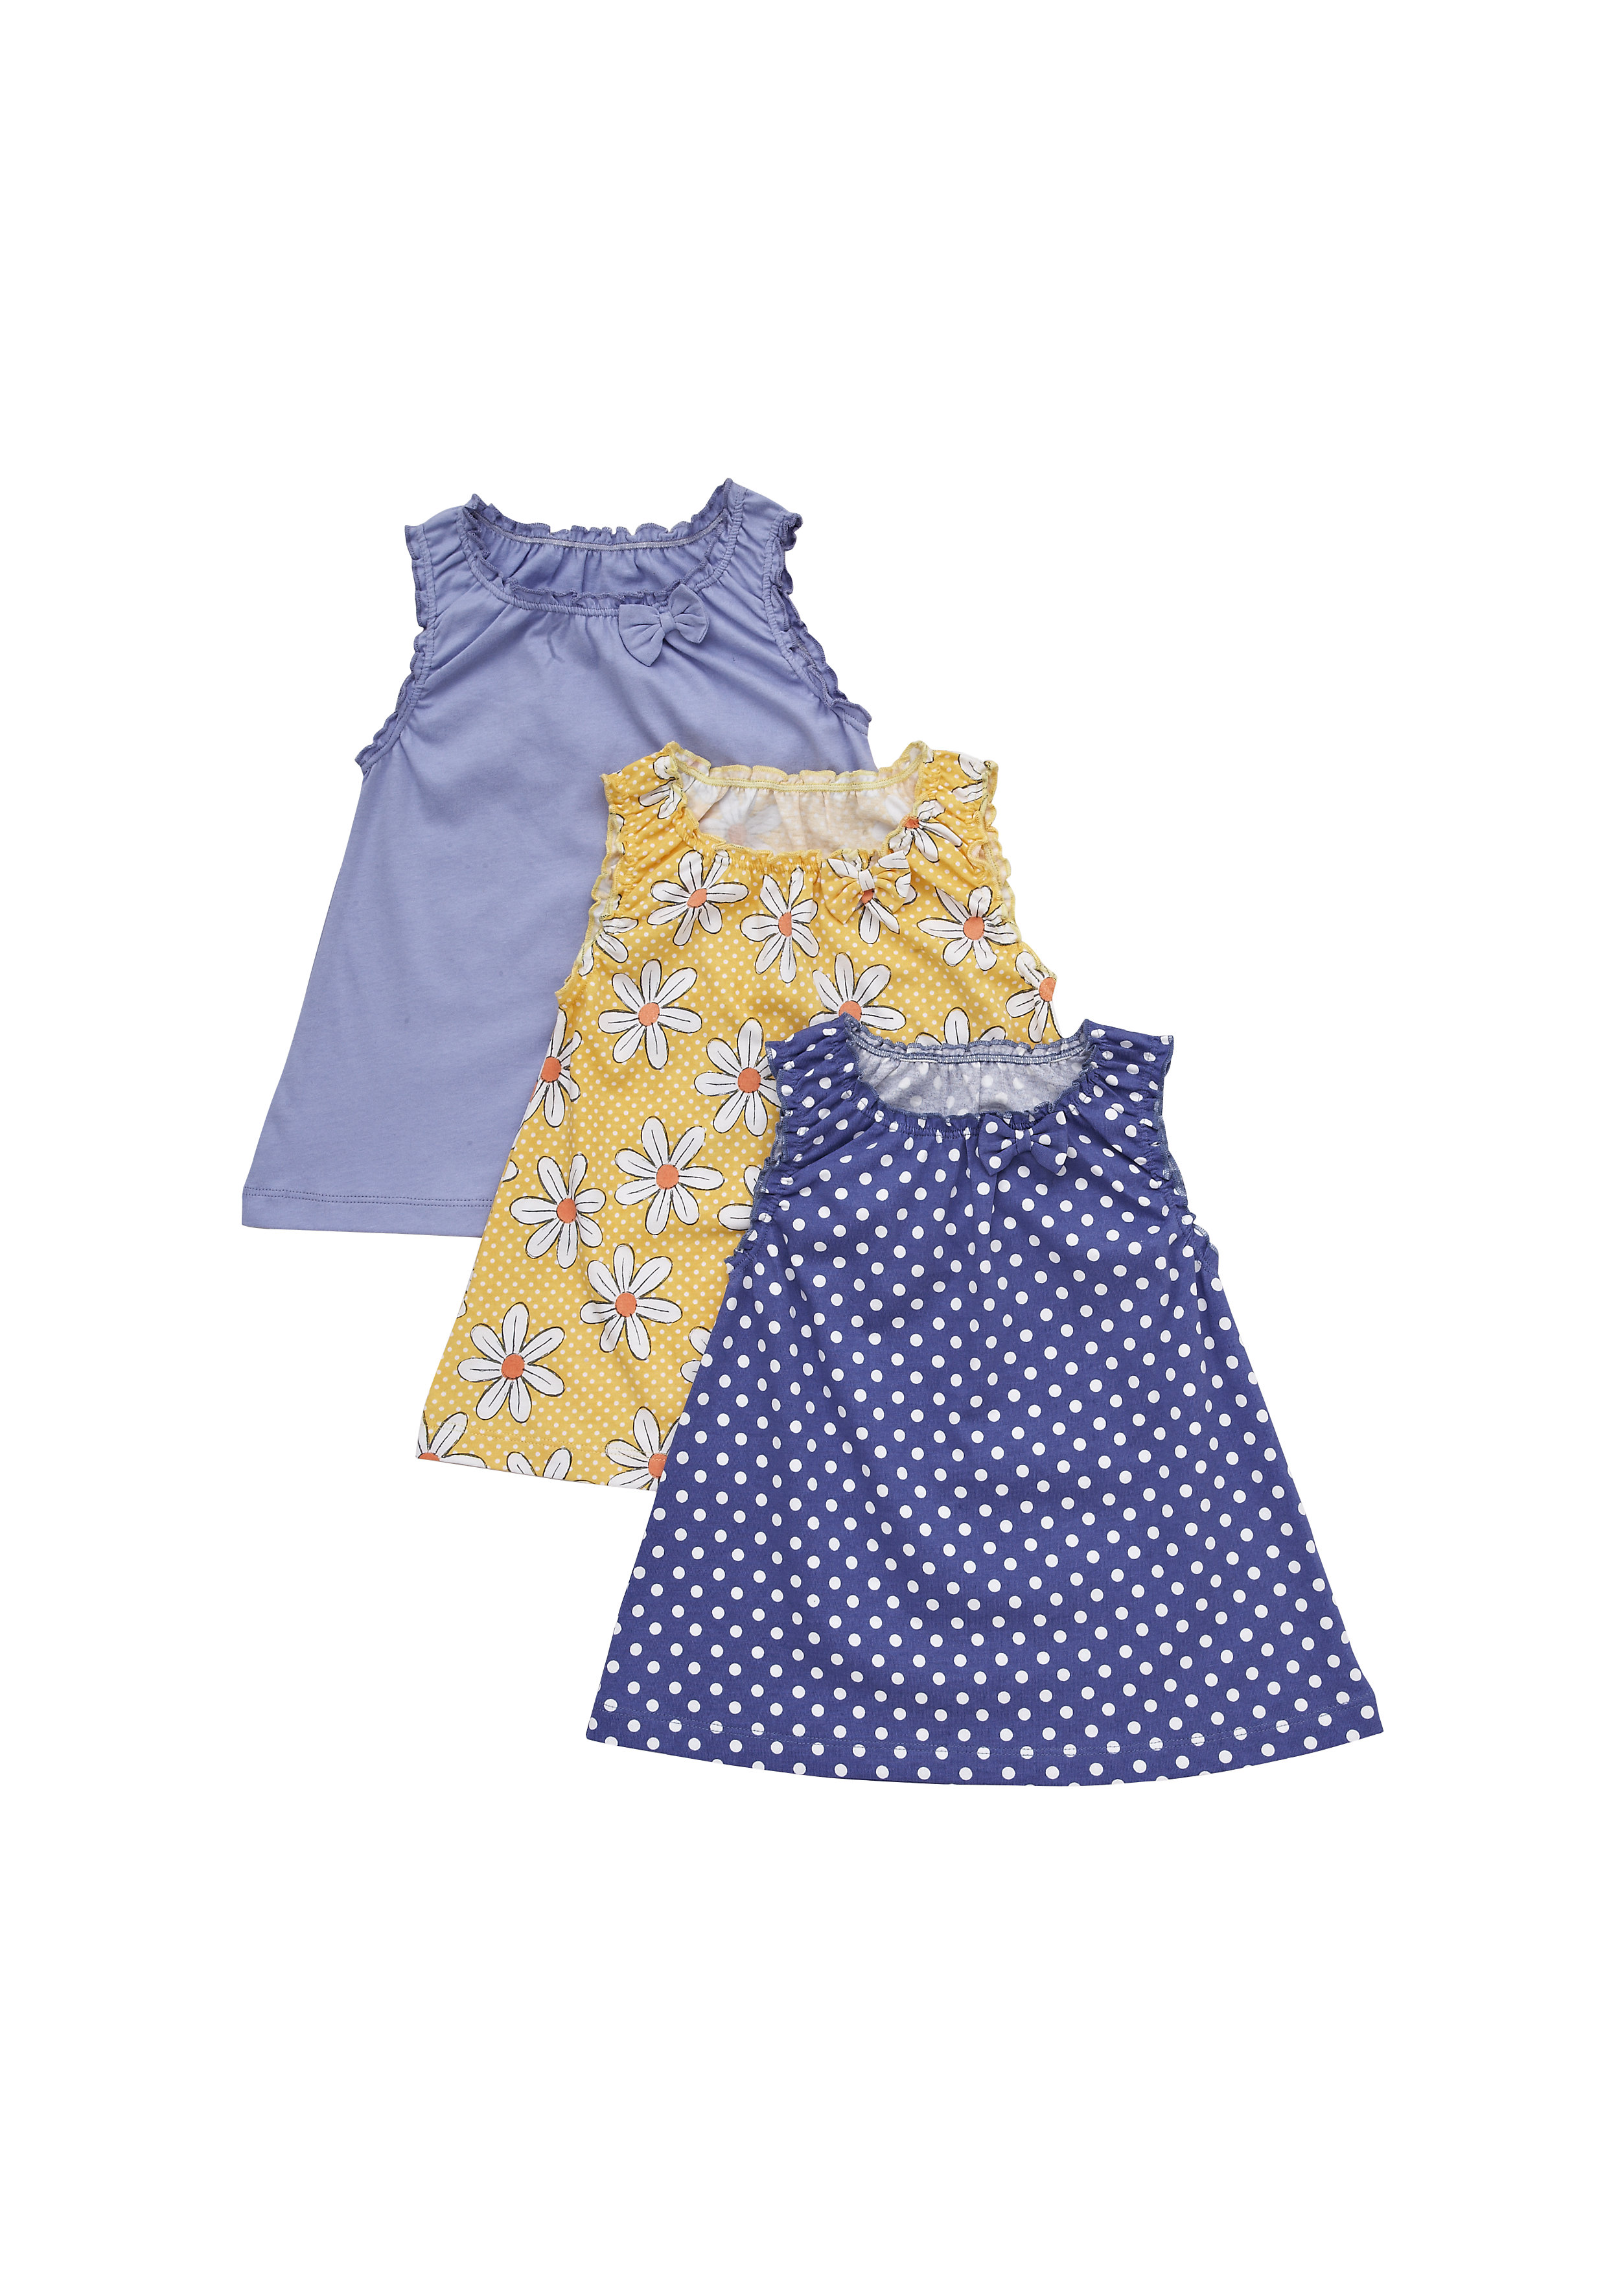 Mothercare | Girls Sleeveless Printed Tops Bow Detail - Pack Of 3 - Multicolor